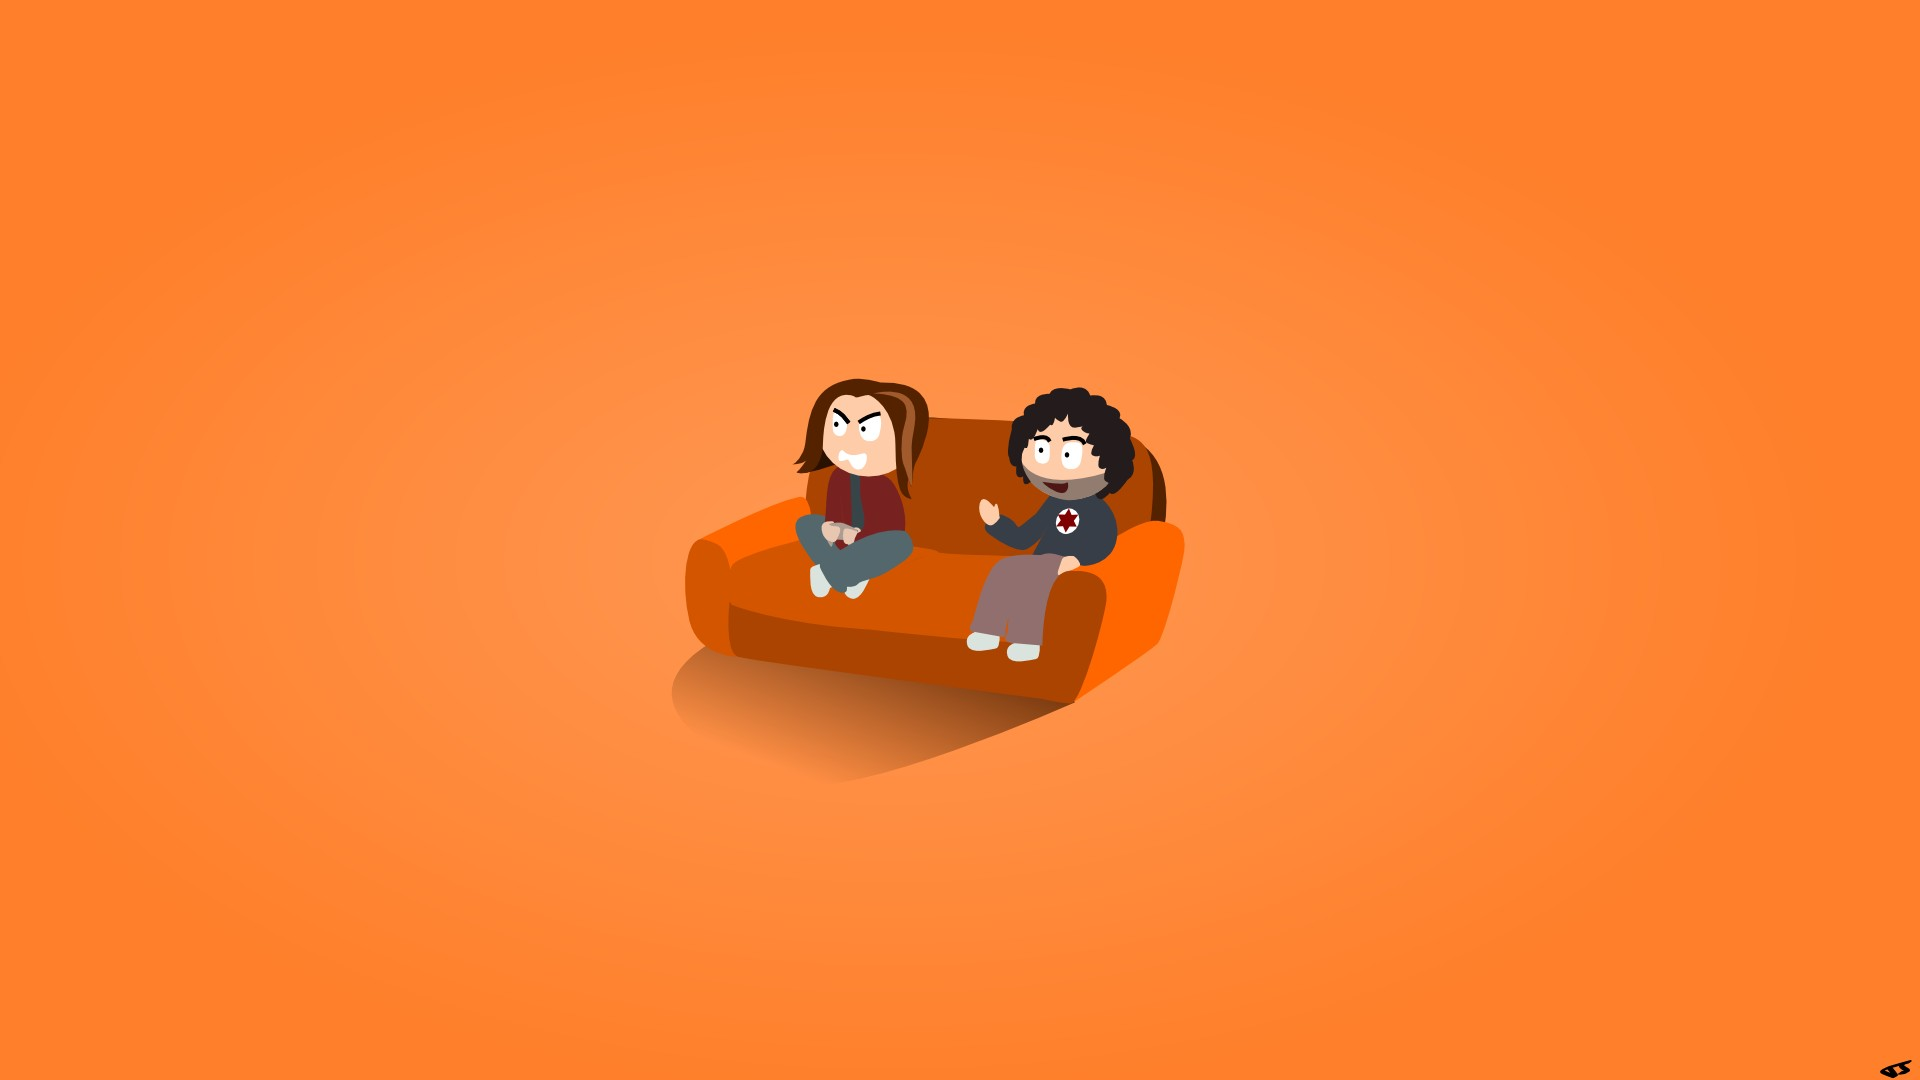 game grumps background download free awesome wallpapers for